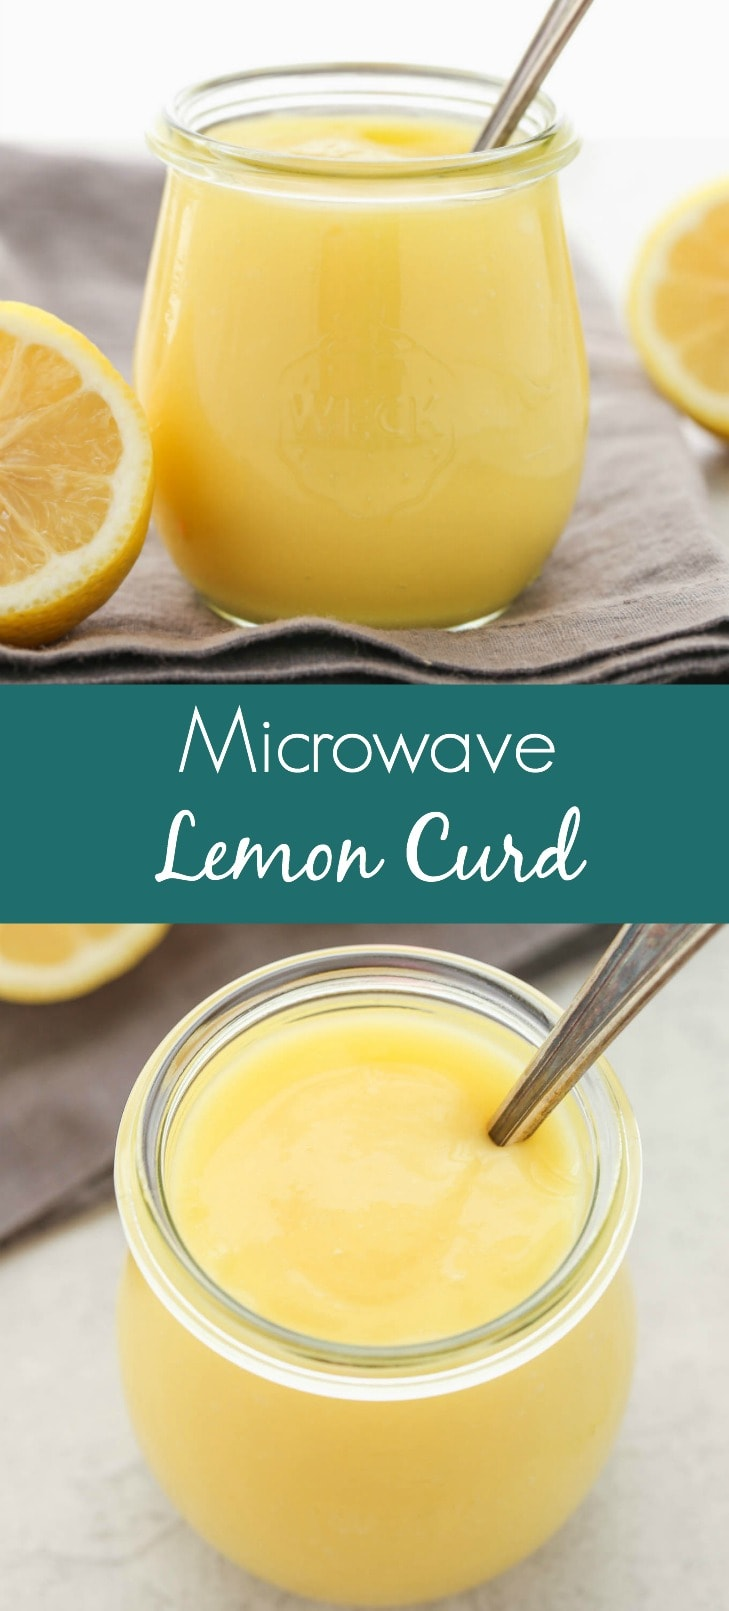 An easy recipe for lemon curd made in the microwave. This Microwave Lemon Curd is so simple to make, delicious, and there are so many different ways to use it!